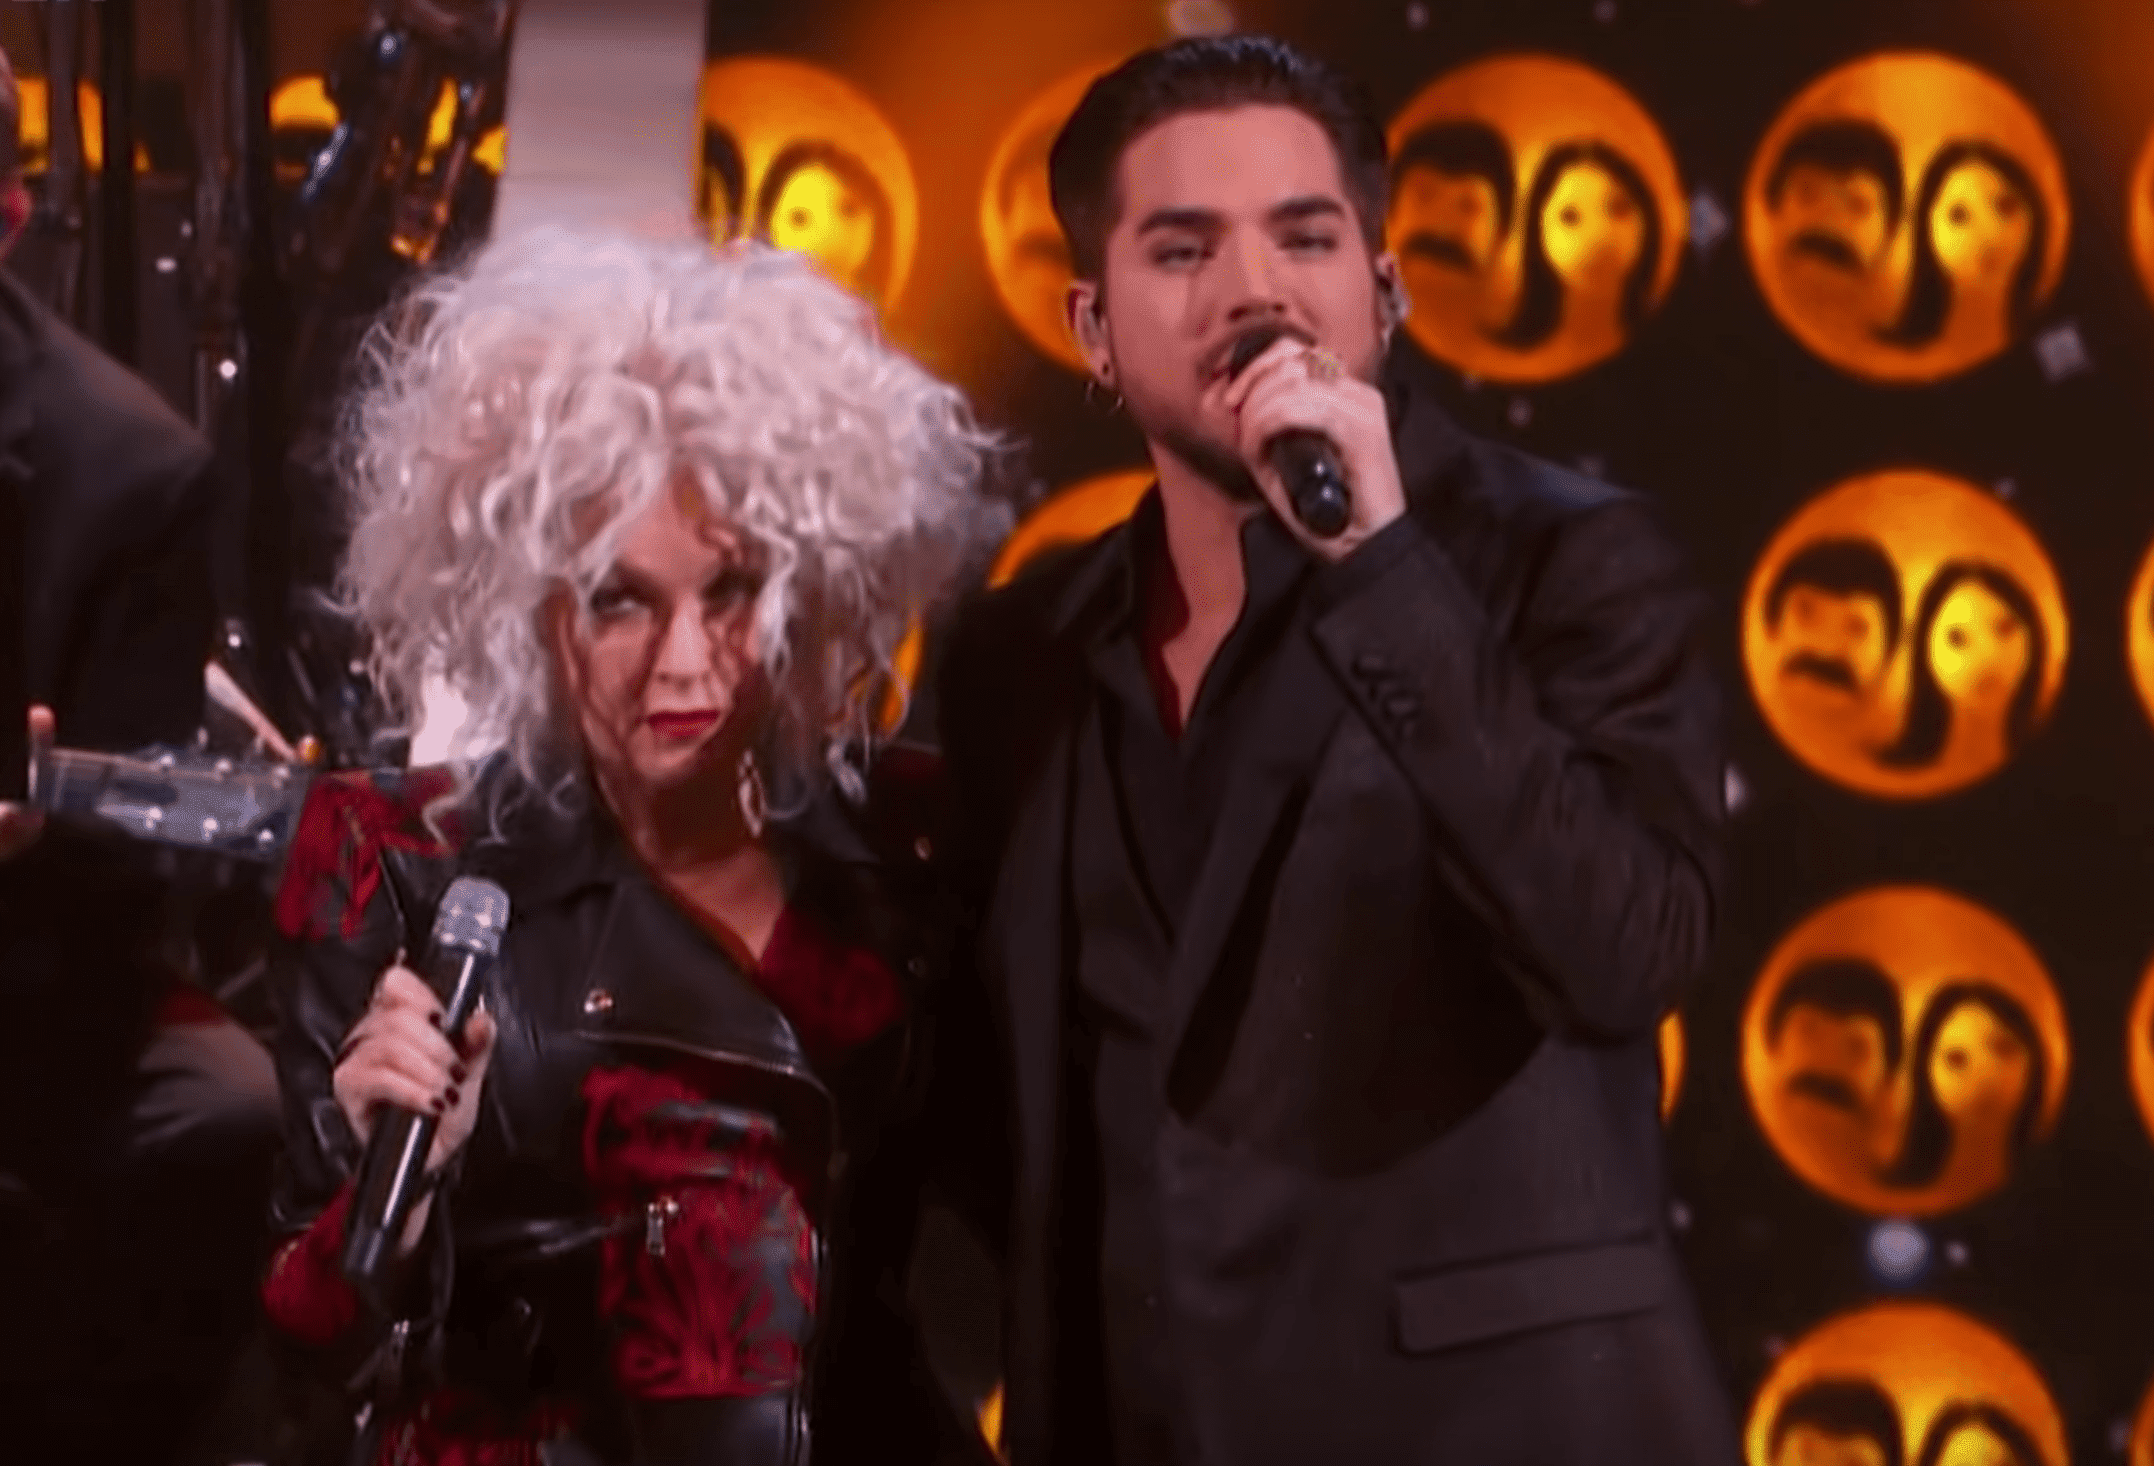 """Adam and Cyndi performing """"I Got You Babe"""" at Kennedy Centre Honors. 